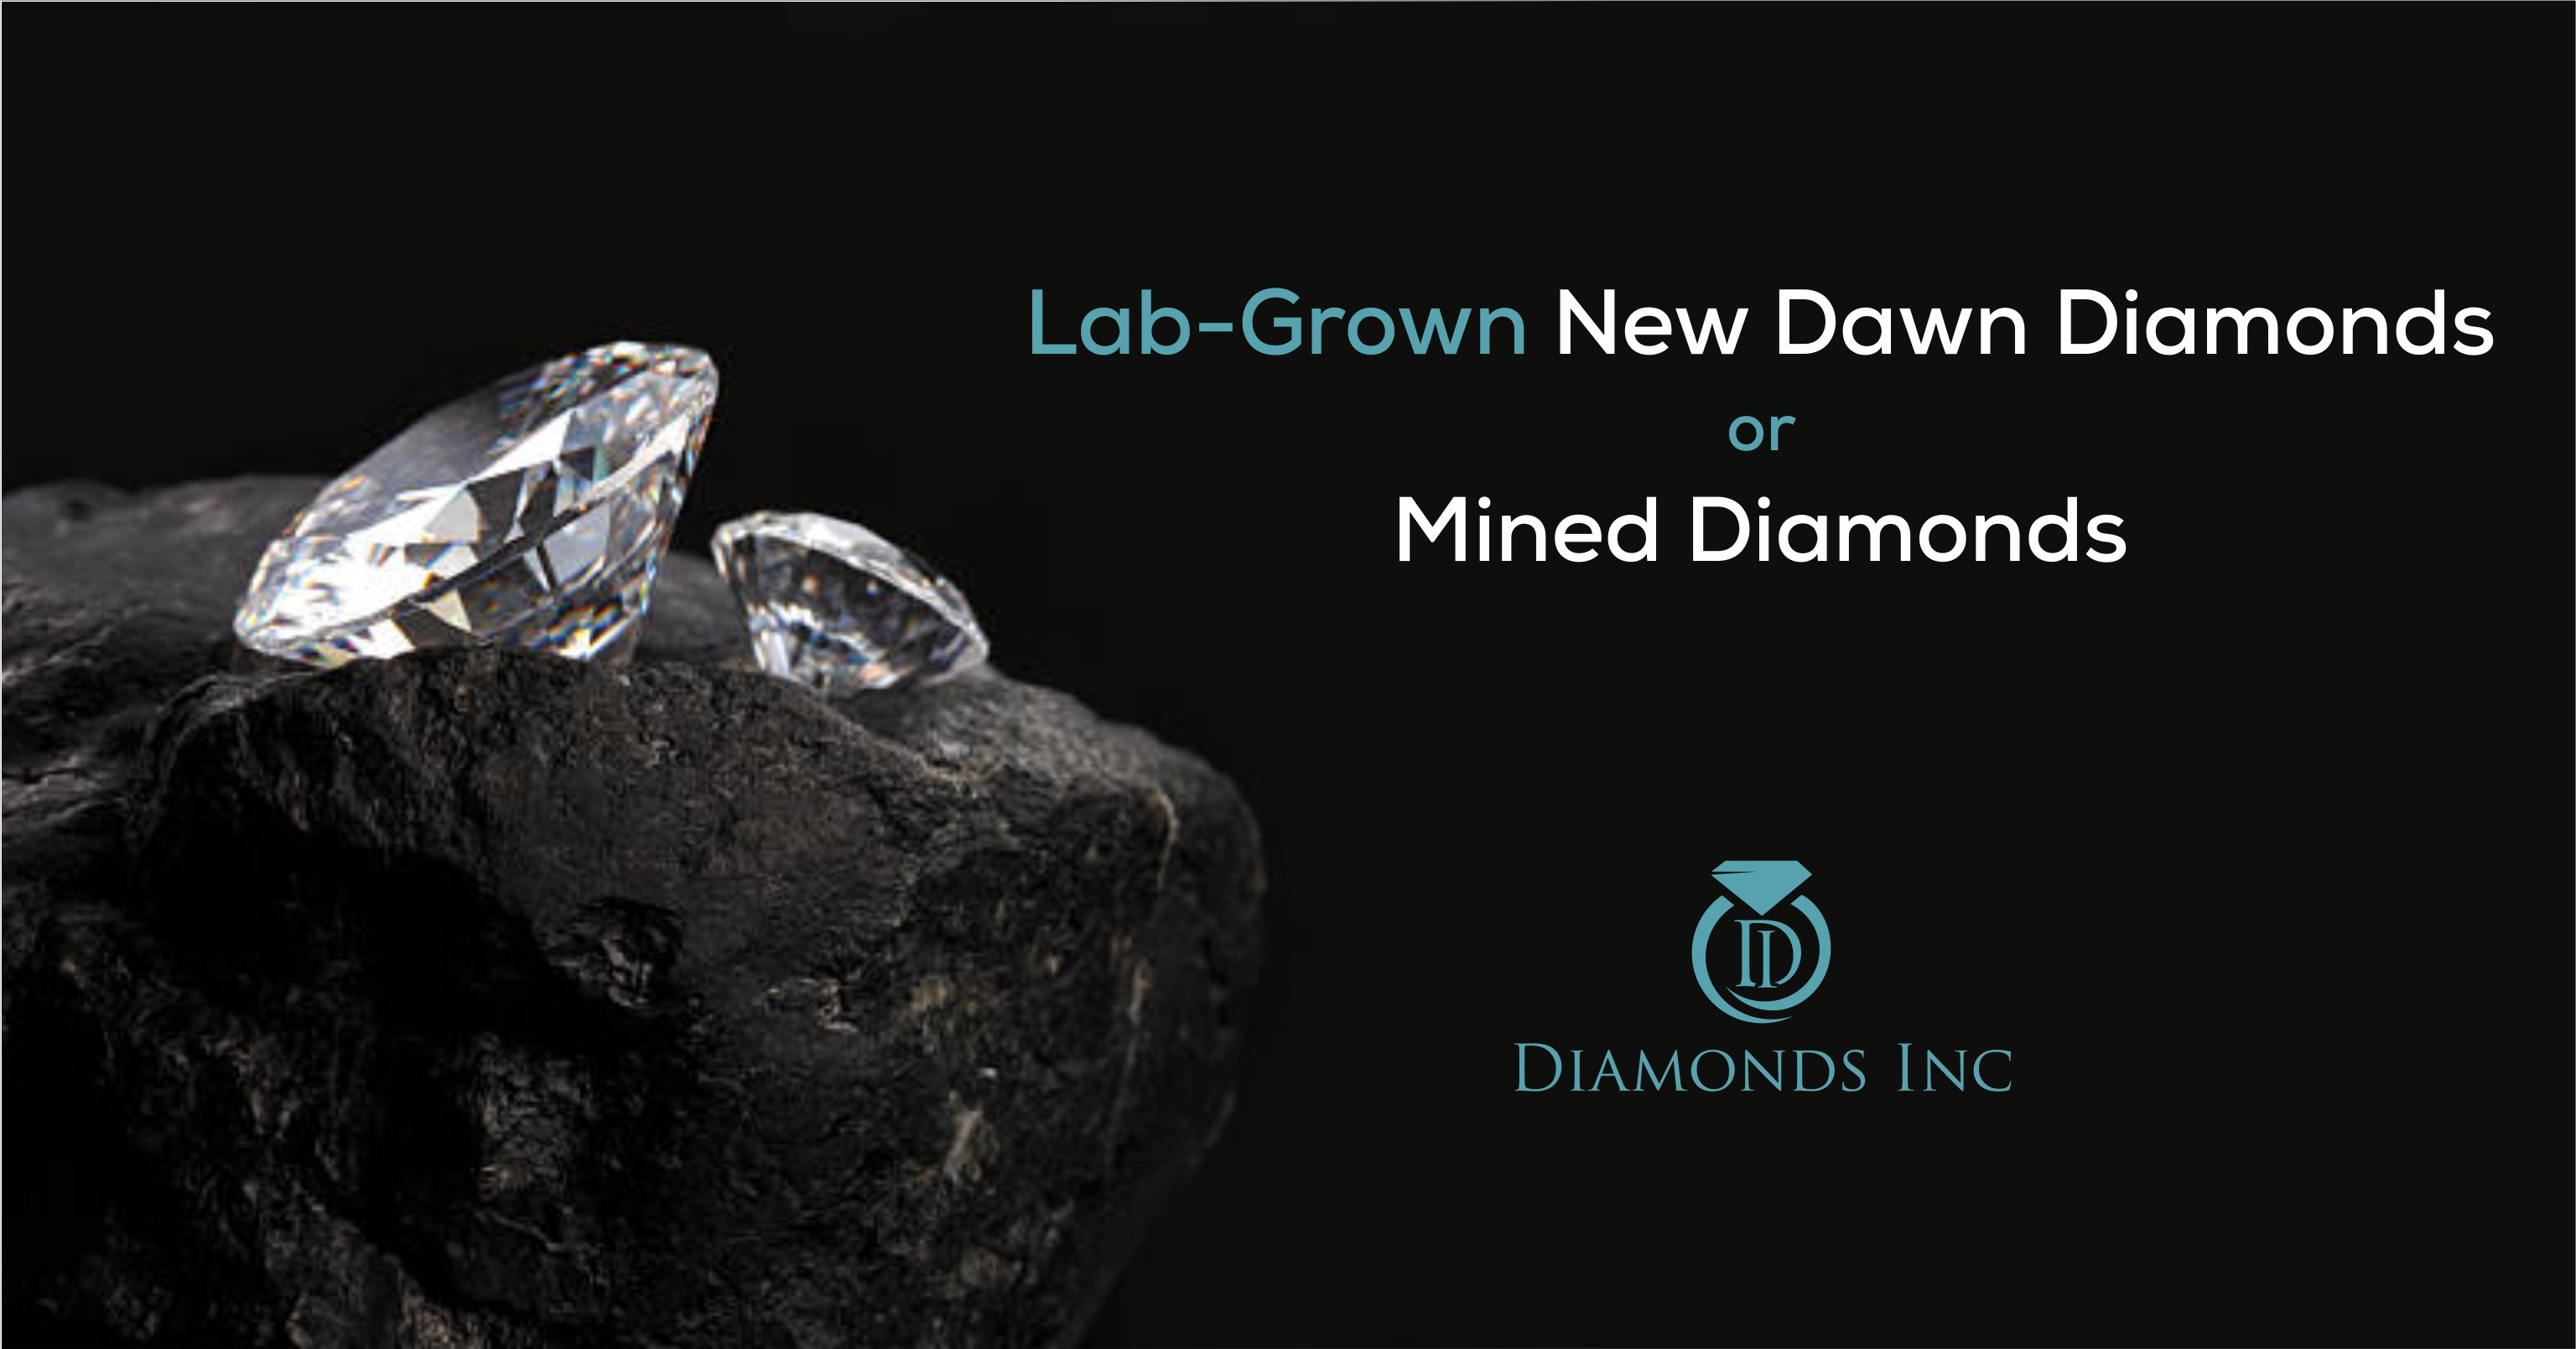 adamas diamond grown lab autoevolution collection adorn rolls diamonds to bdi the royce